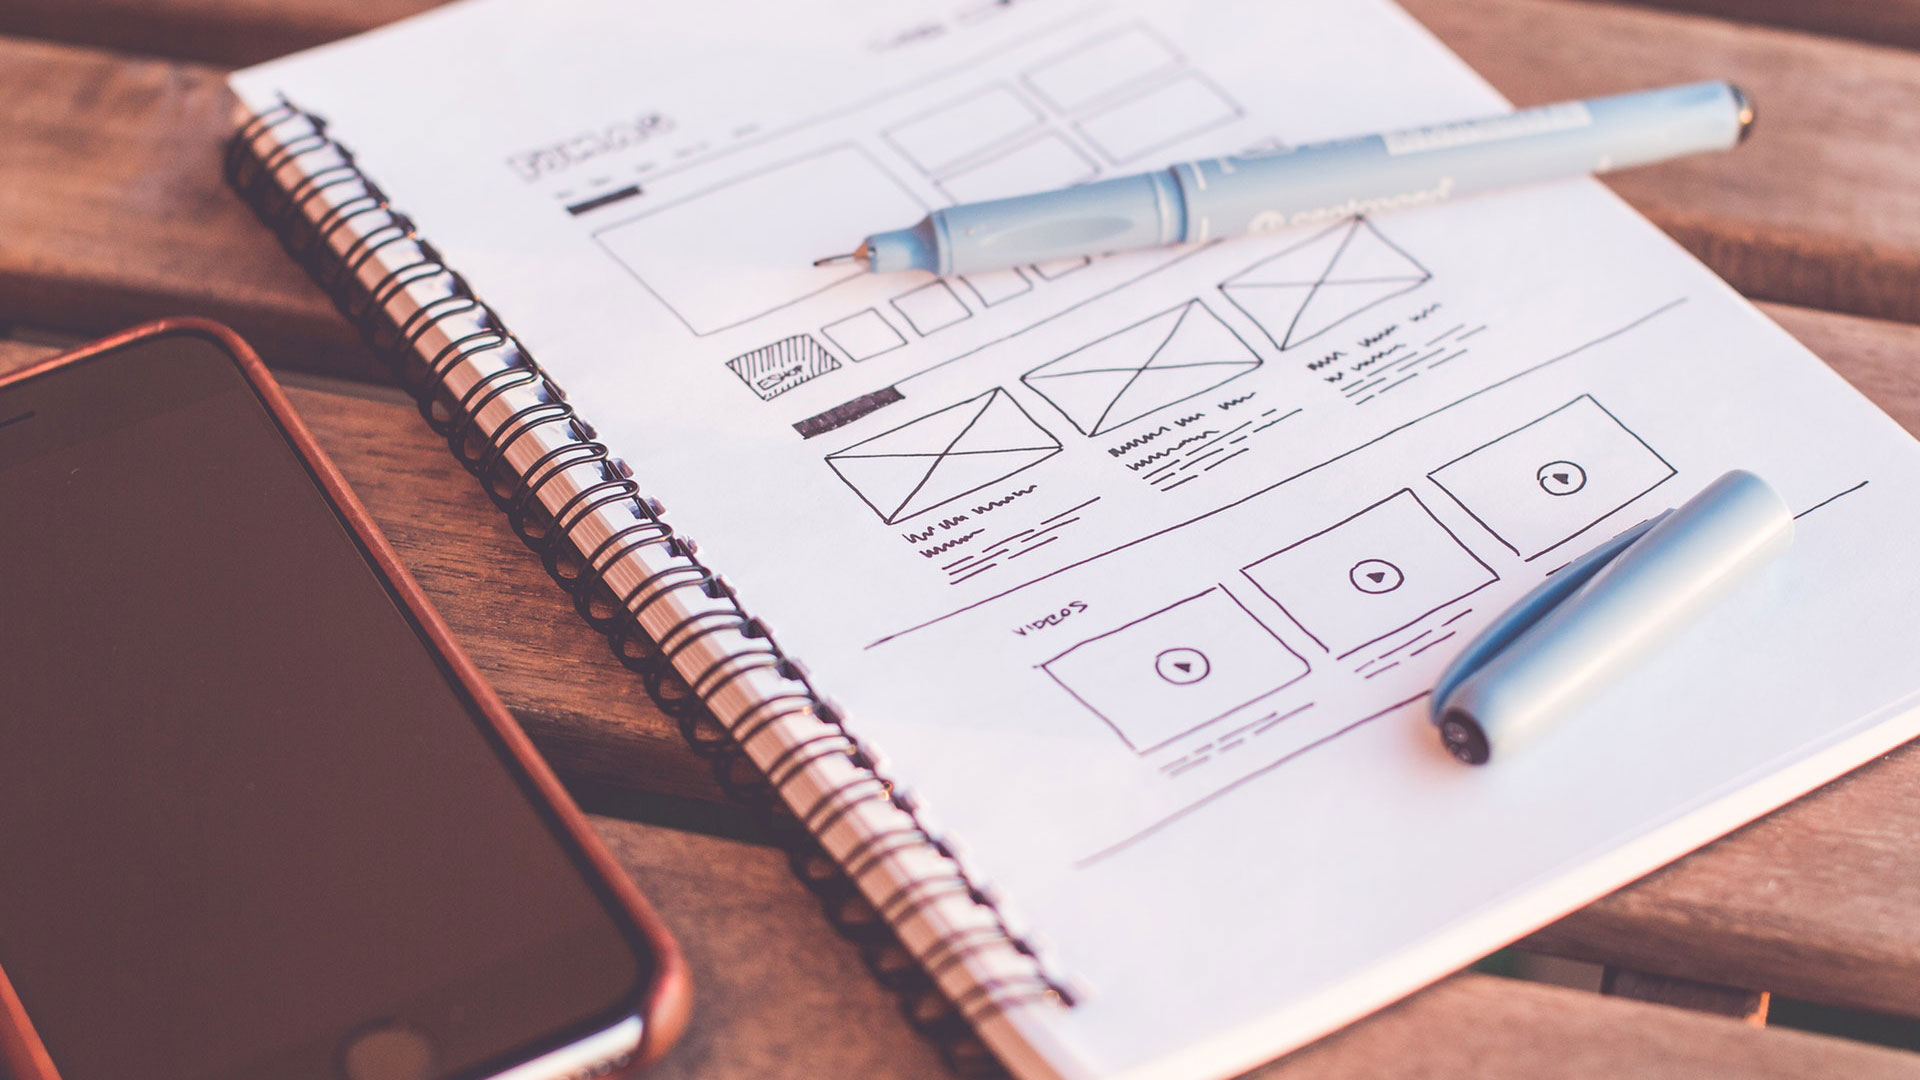 7 golden rules of UX | Creative Bloq